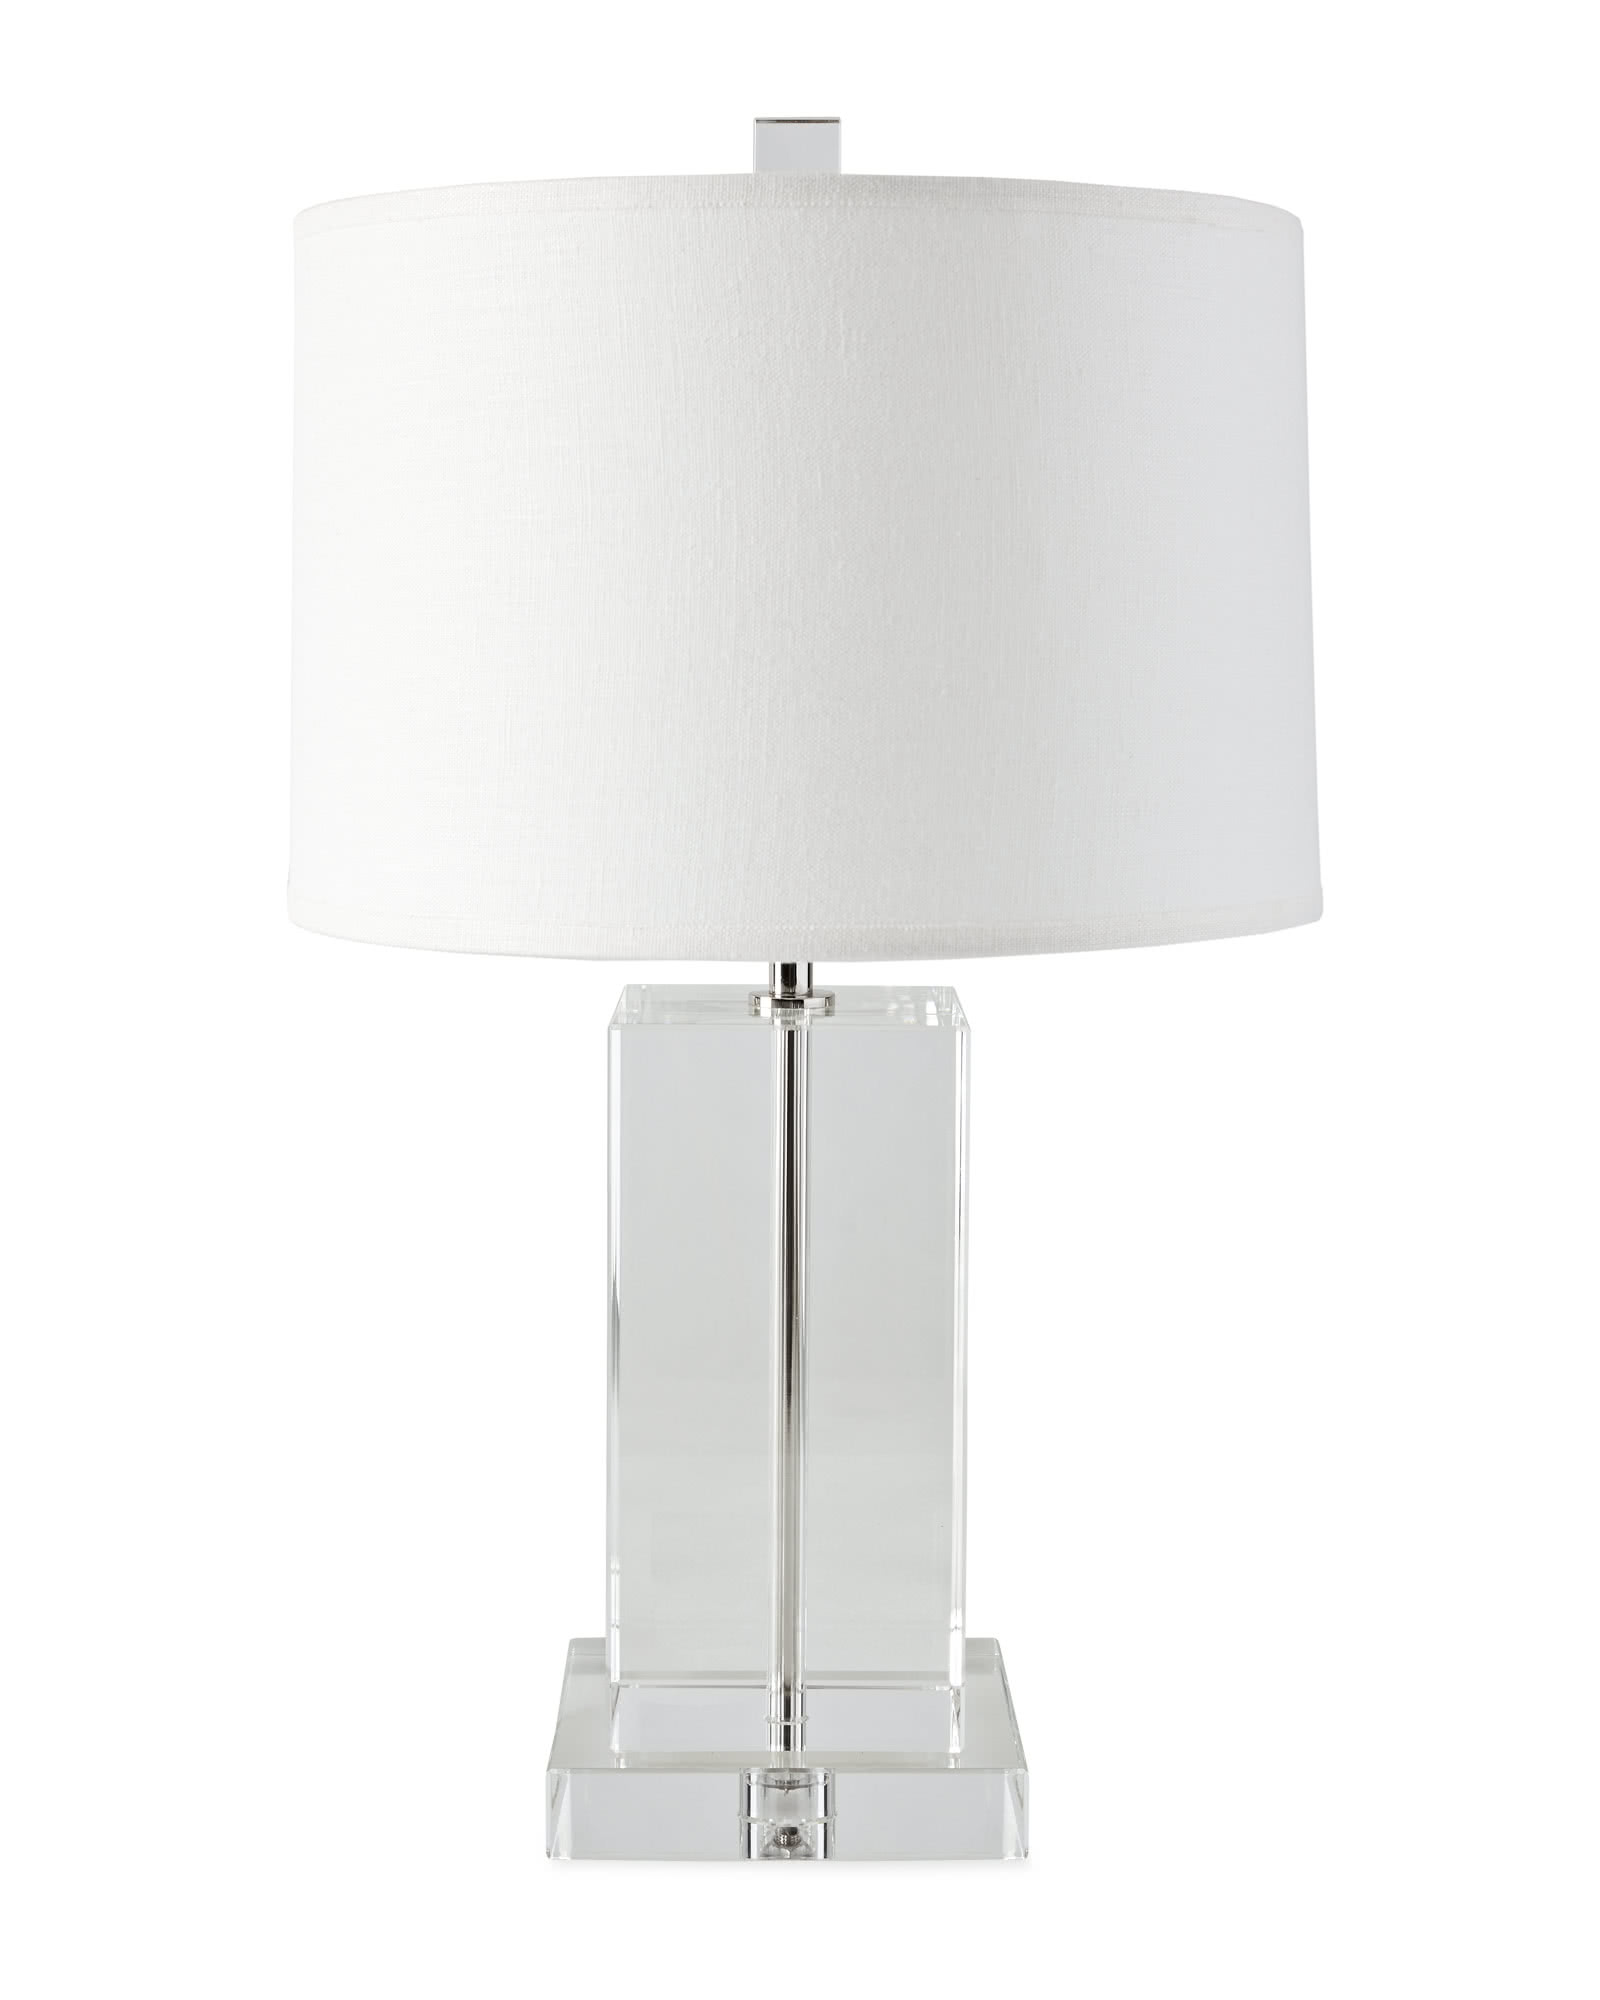 Darby Crystal Table Lamp Serena Lily